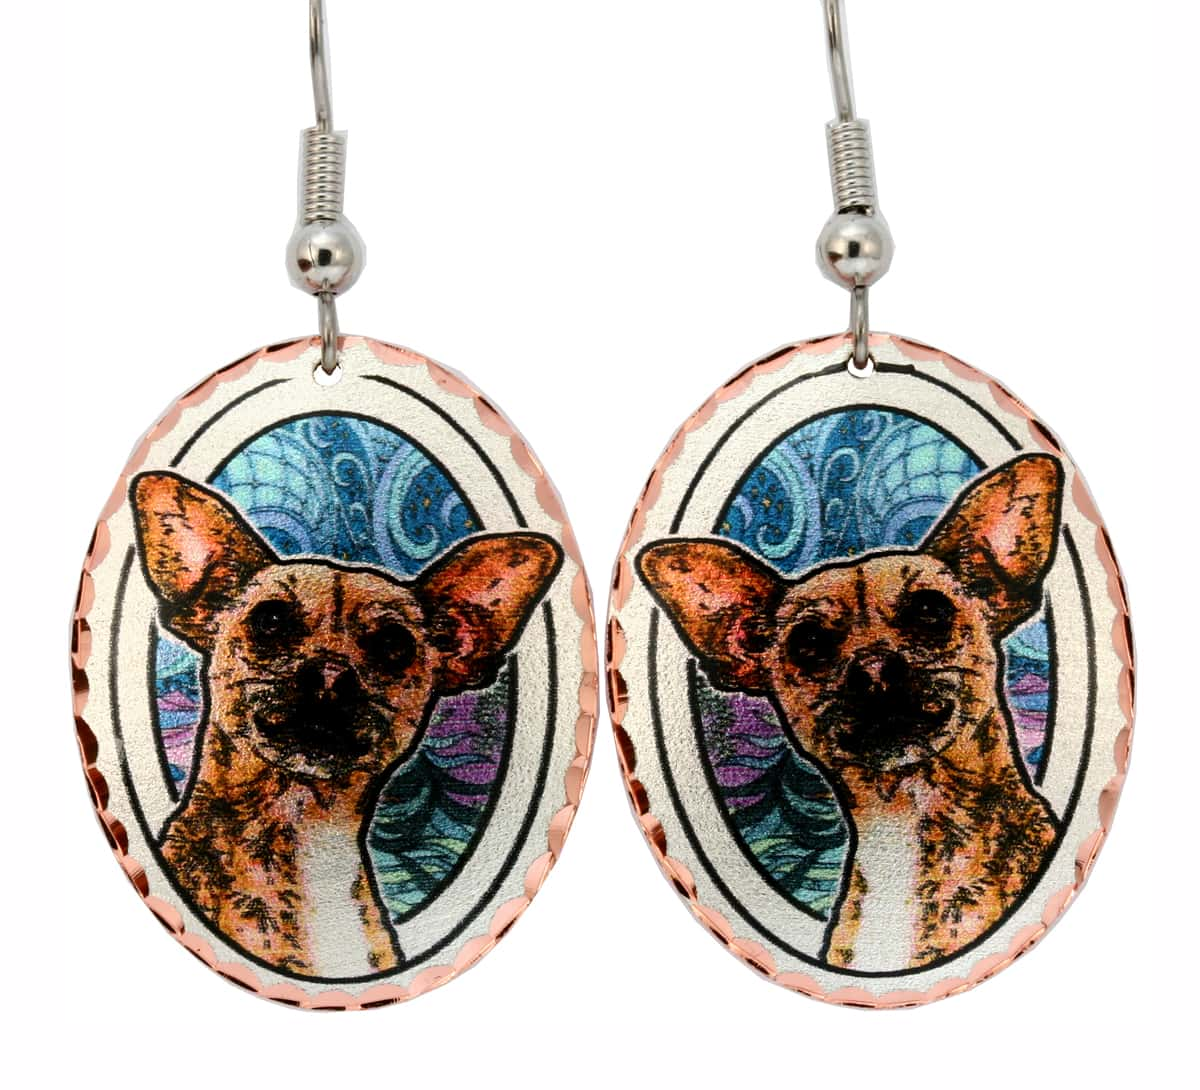 Tan Chihuahua Dog Jewelry Earrings